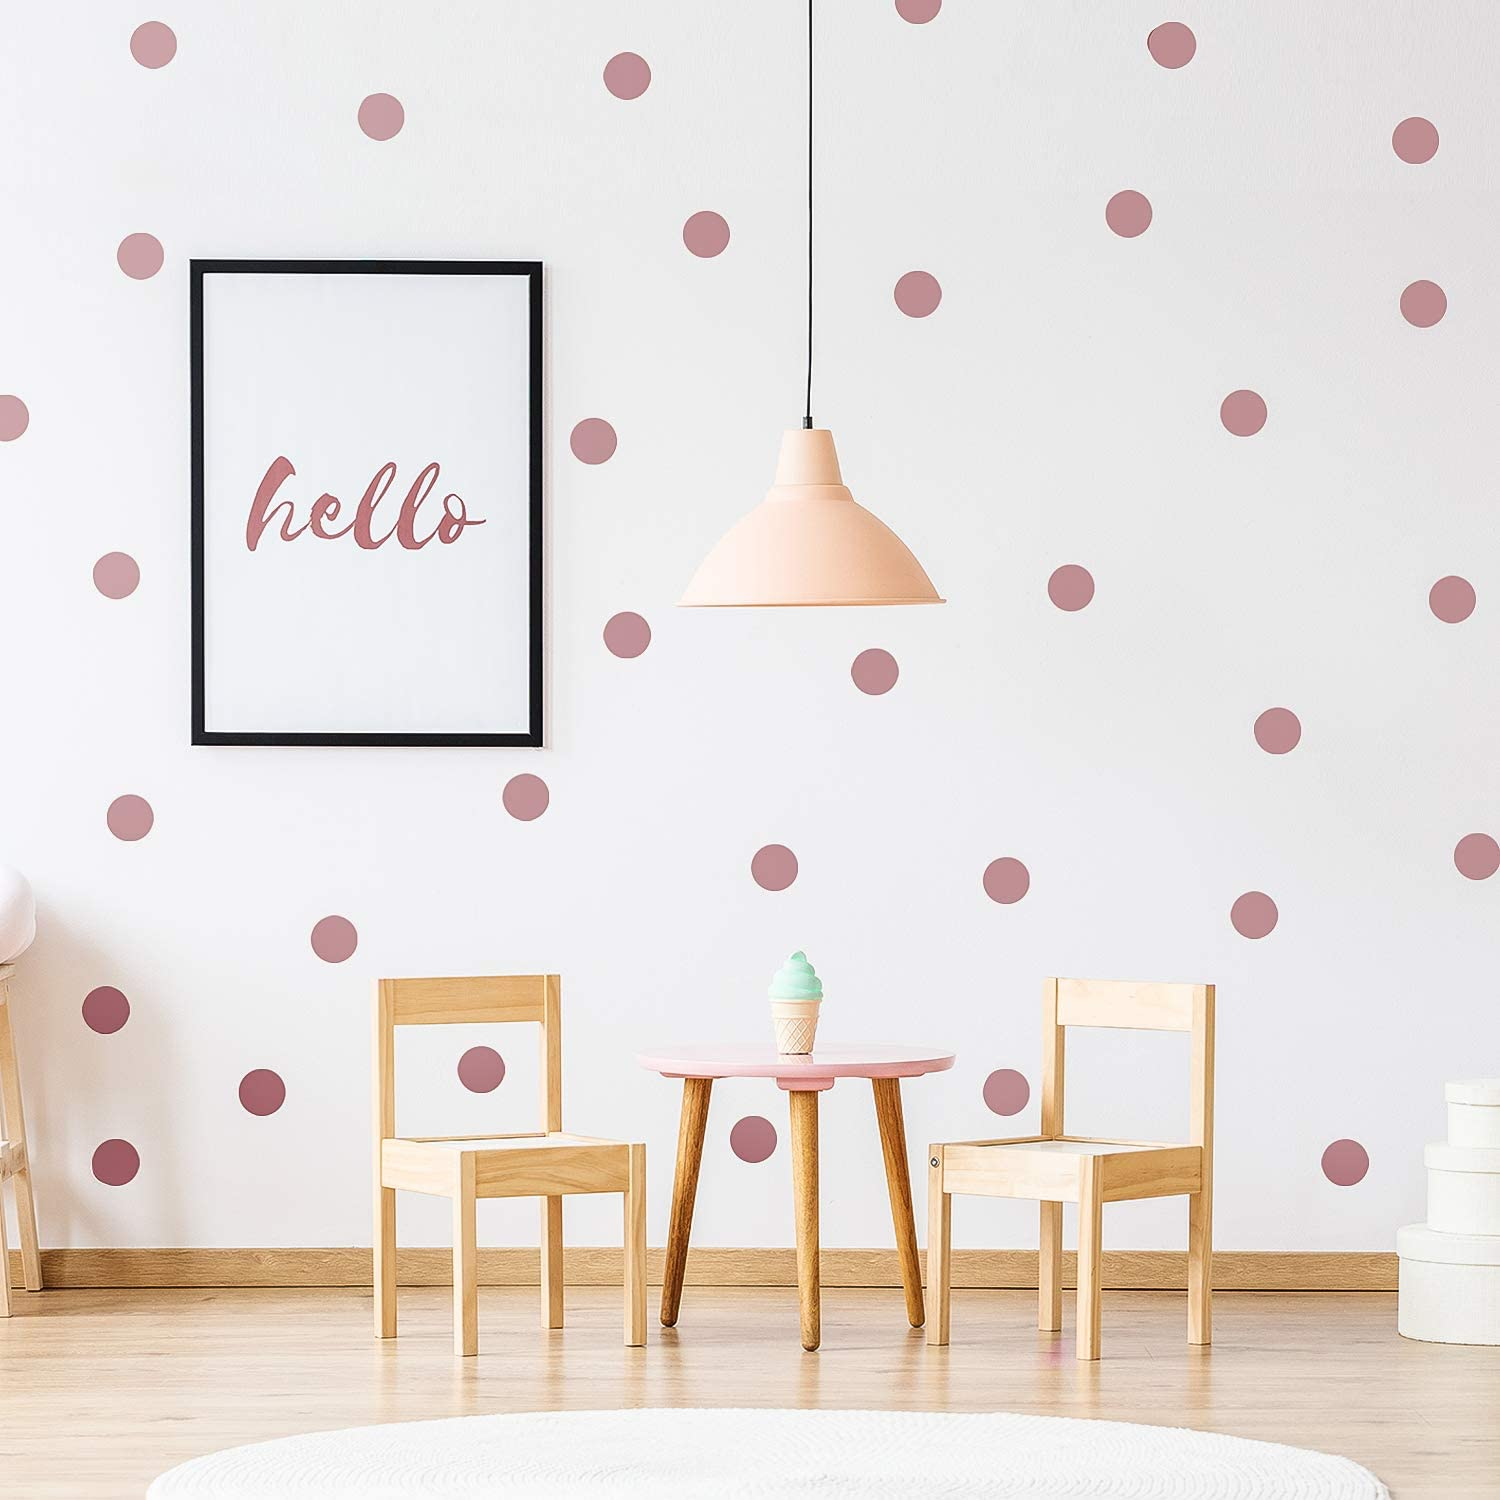 Outus 200 Pieces Wall Decal Dots Posh Dots Easy to Peel and Stick Removable Metallic Vinyl Polka Dot Decor, Round Circle Wall Decal Stickers for Festive Baby Nursery Room (Rose Gold)